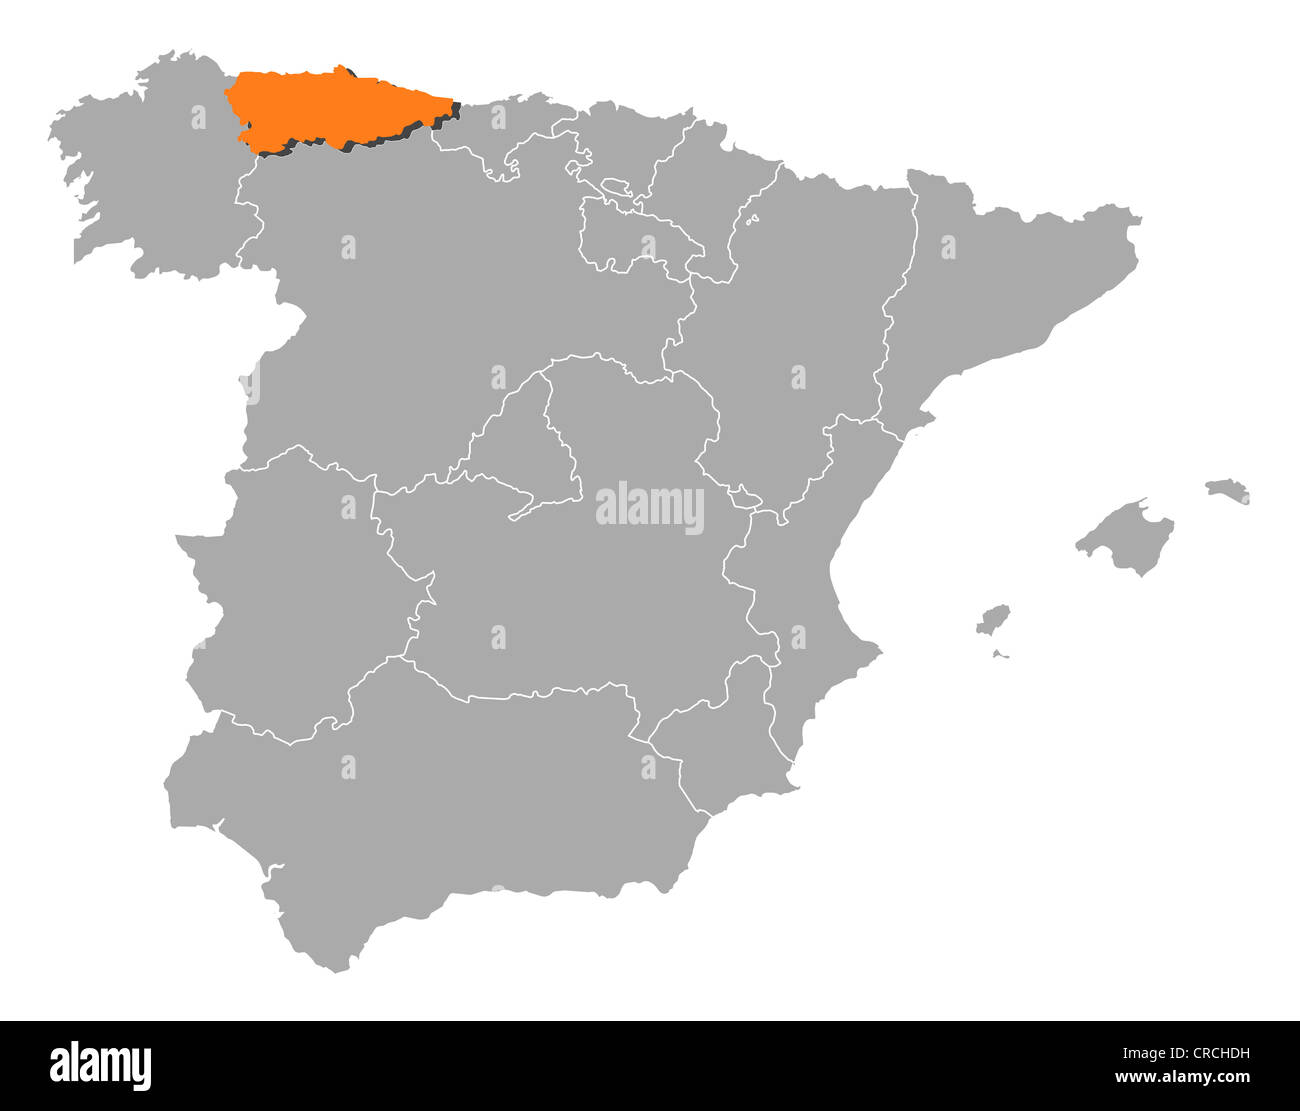 Map Of Spain With Regions.Political Map Of Spain With The Several Regions Where Asturias Is